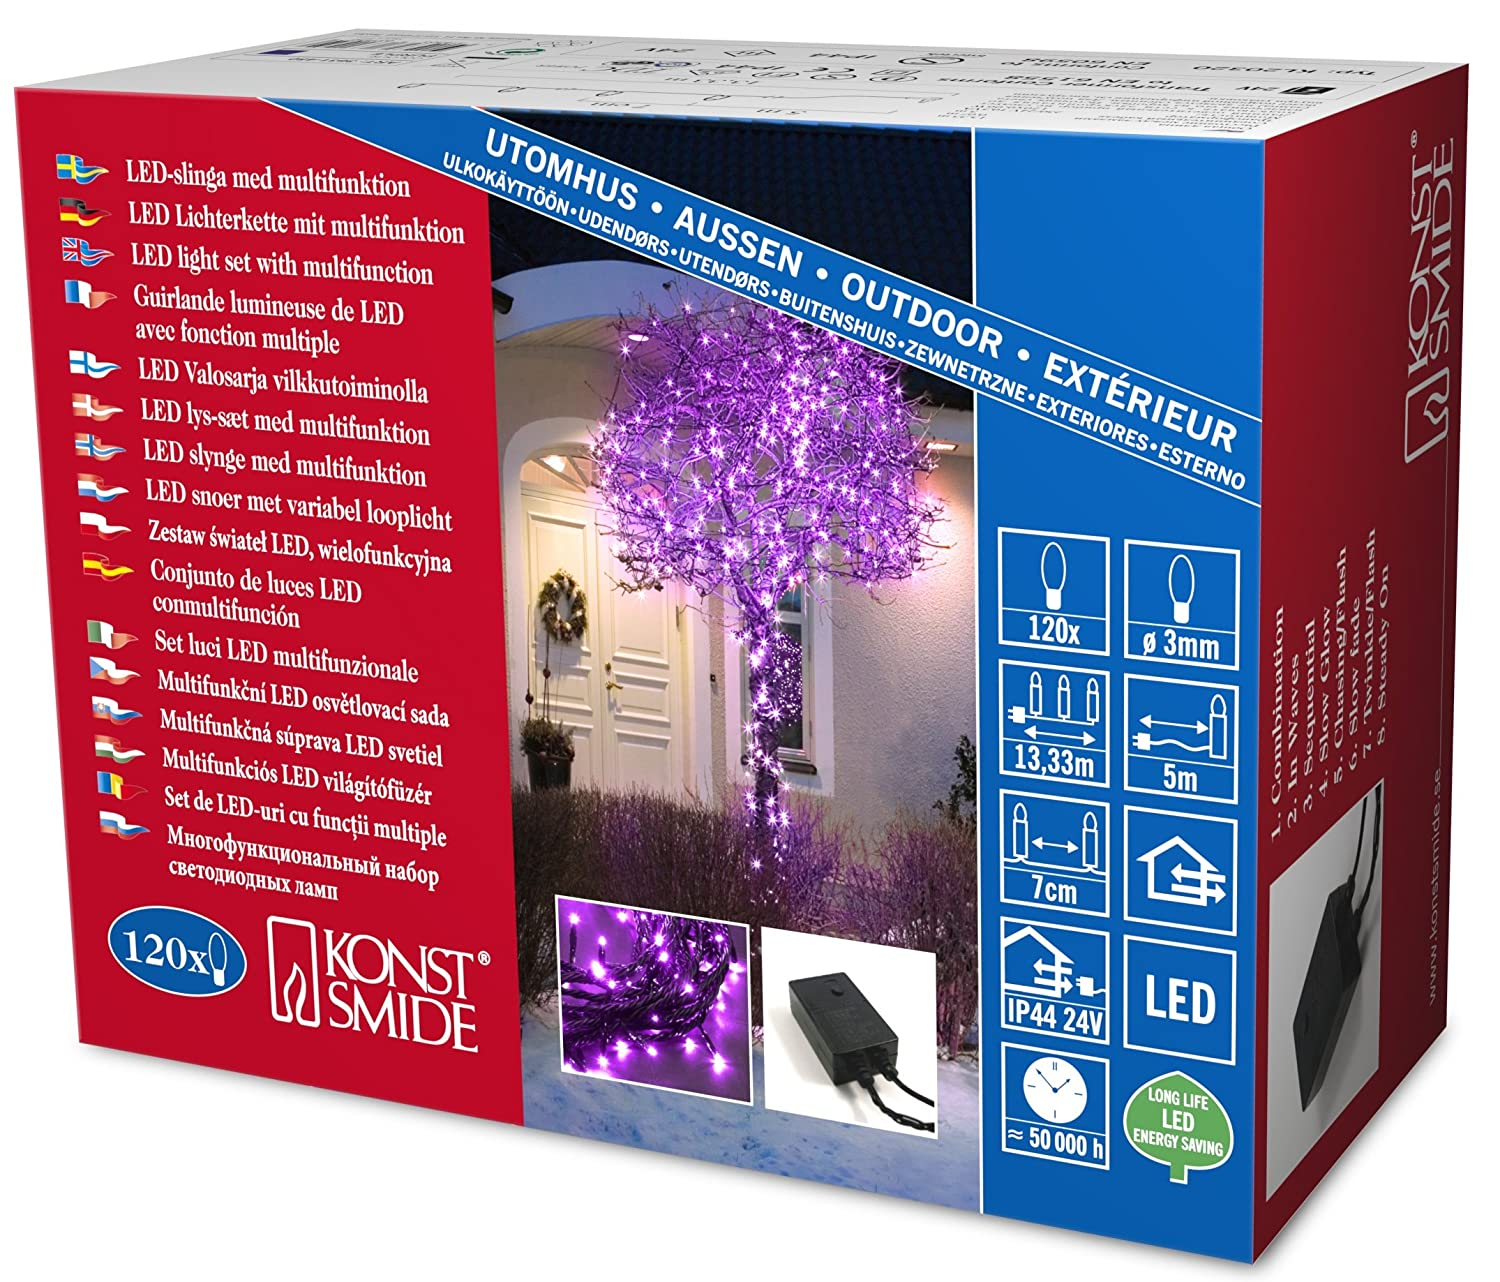 Konstsmide 5m Length Of 80 Red Multi Function Outdoor Micro LED Fairy Lights. Black Cable.